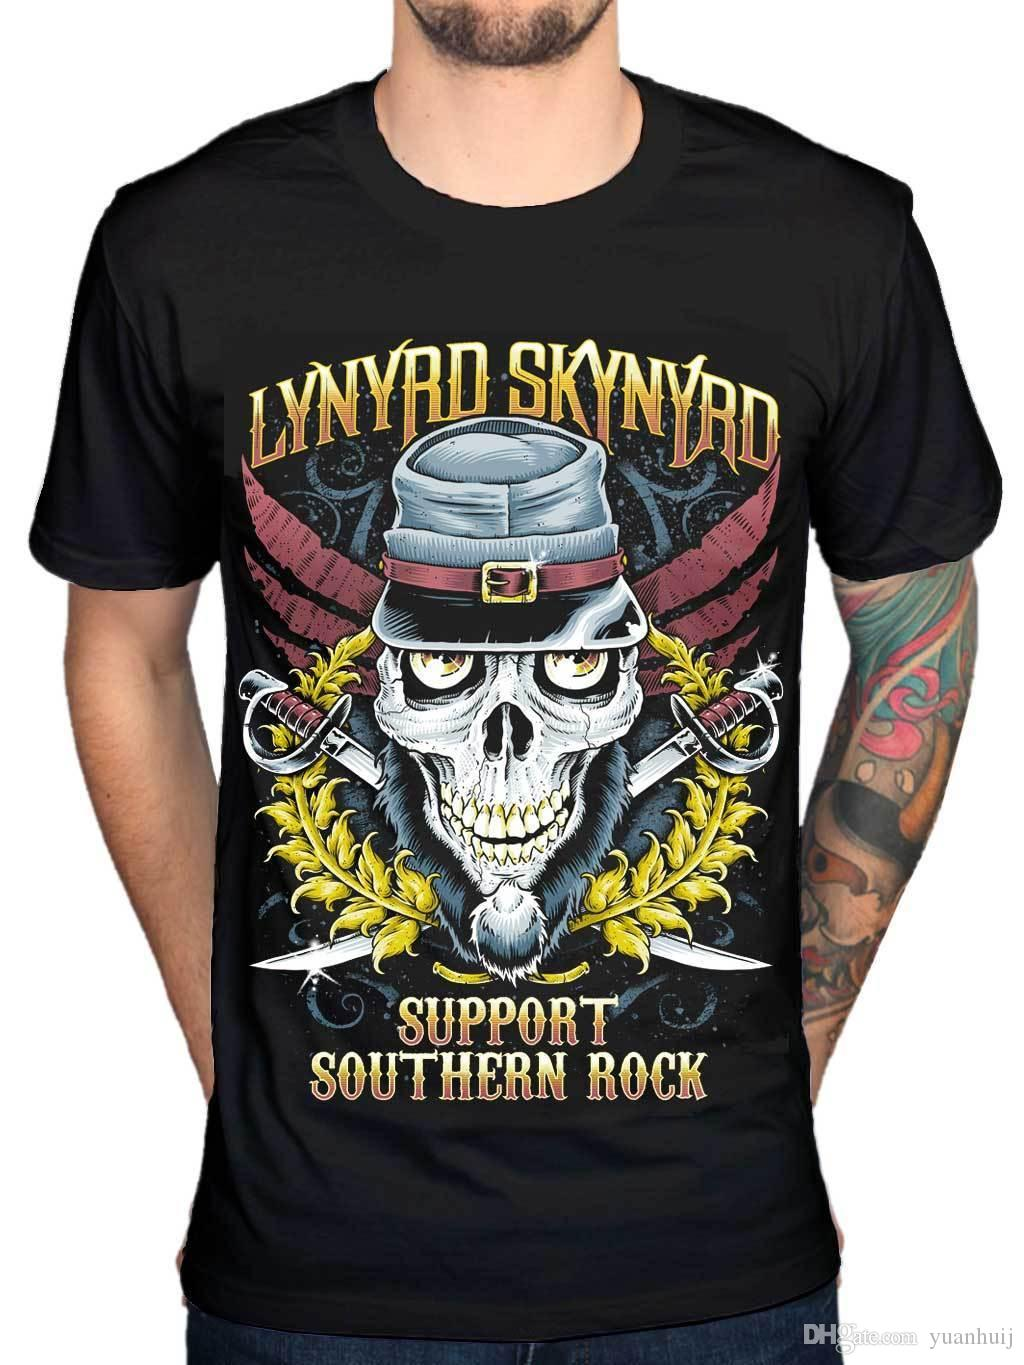 e81f6c67 Official Lynyrd Skynyrd Support Southern Rock T Shirt Van Zant Buy Tshirts  The Who T Shirts From Tee4uever, $10.67| DHgate.Com